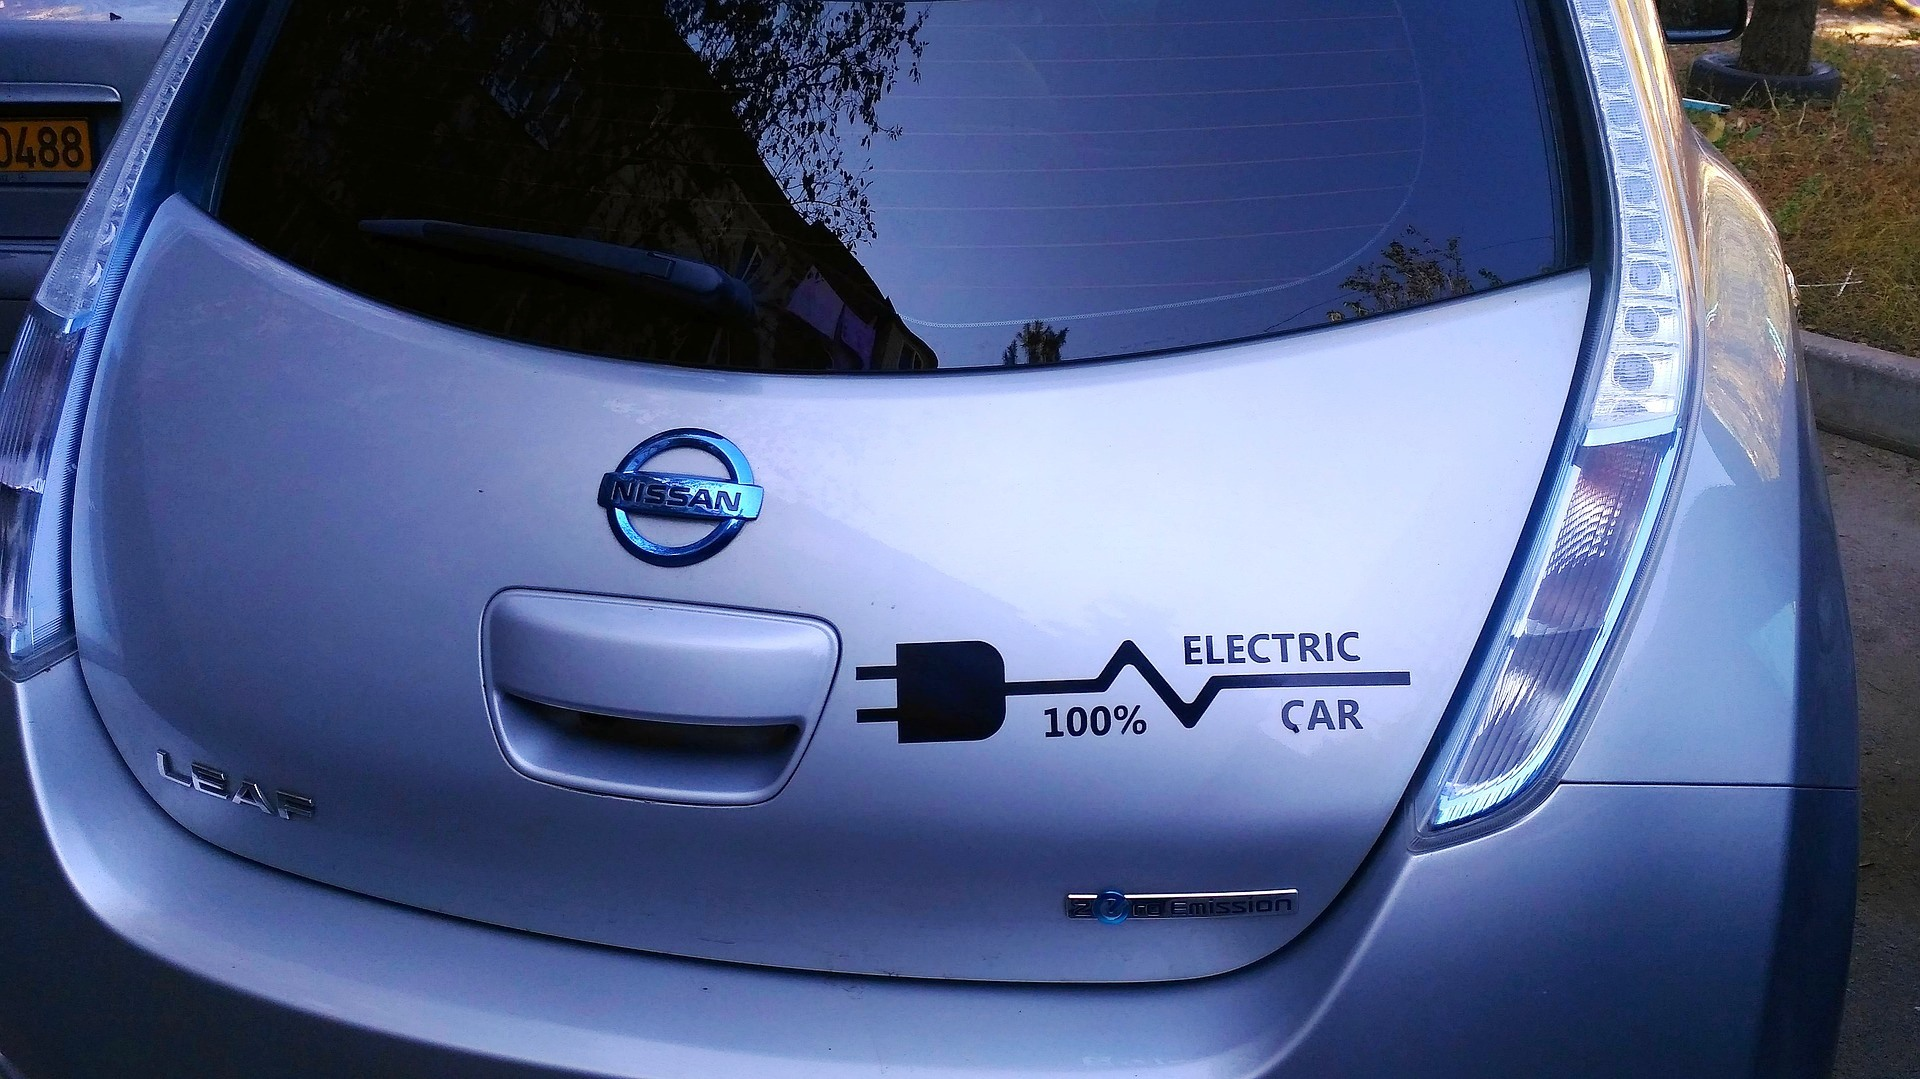 electric car nissan